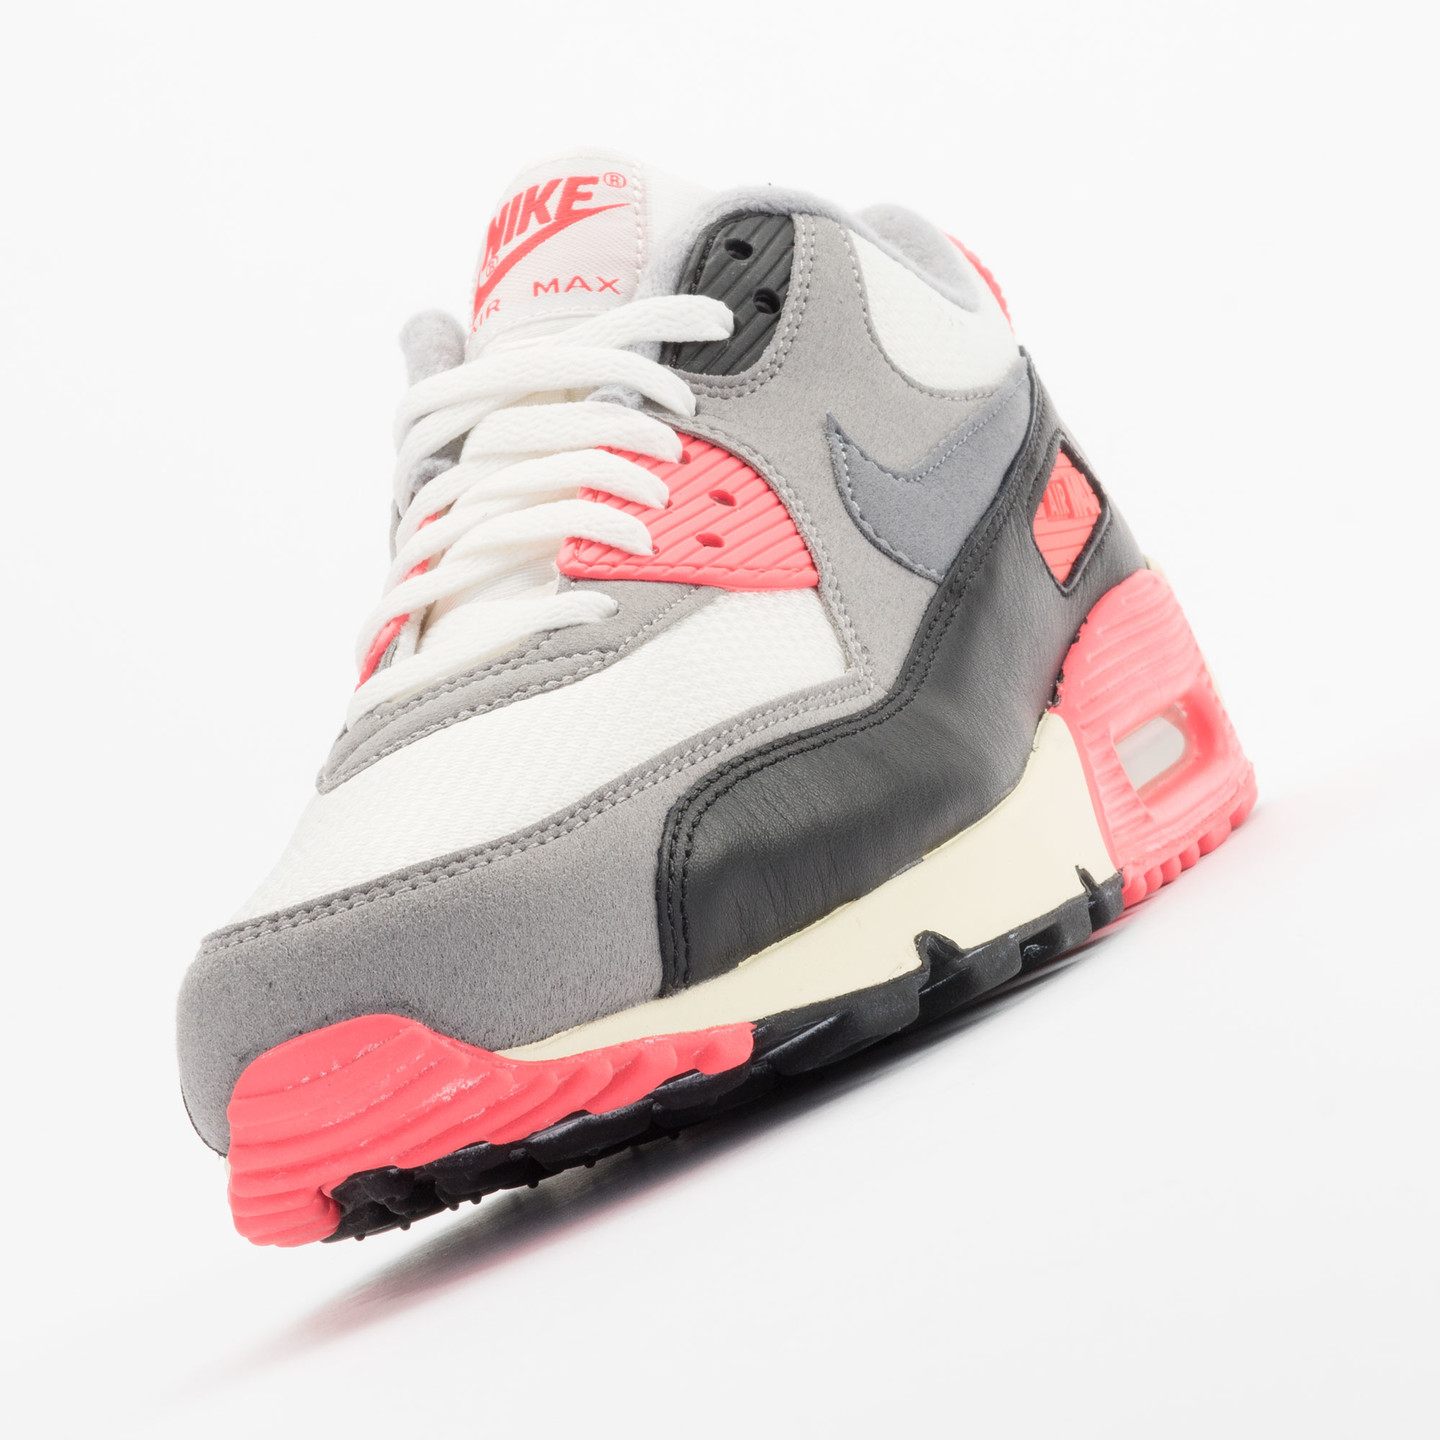 Nike Air Max 90 OG Vintage Infrared Sail/Cool Grey-Mdm Grey-Infrrd 543361-161-45.5